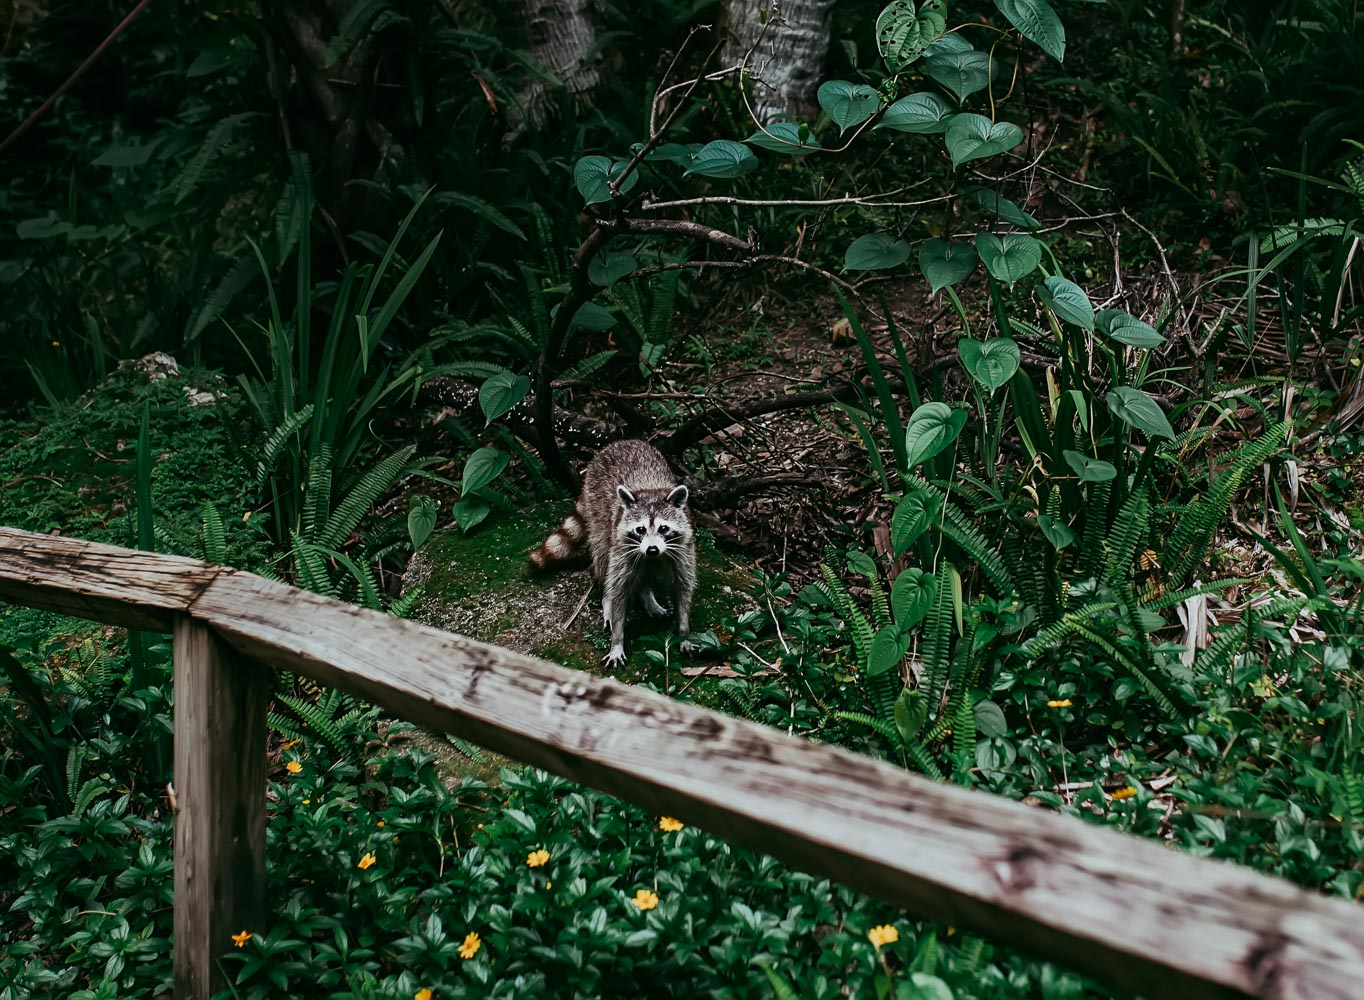 See, I told you raccoons were following us. One was even in my work bag rummaging for food. HA!